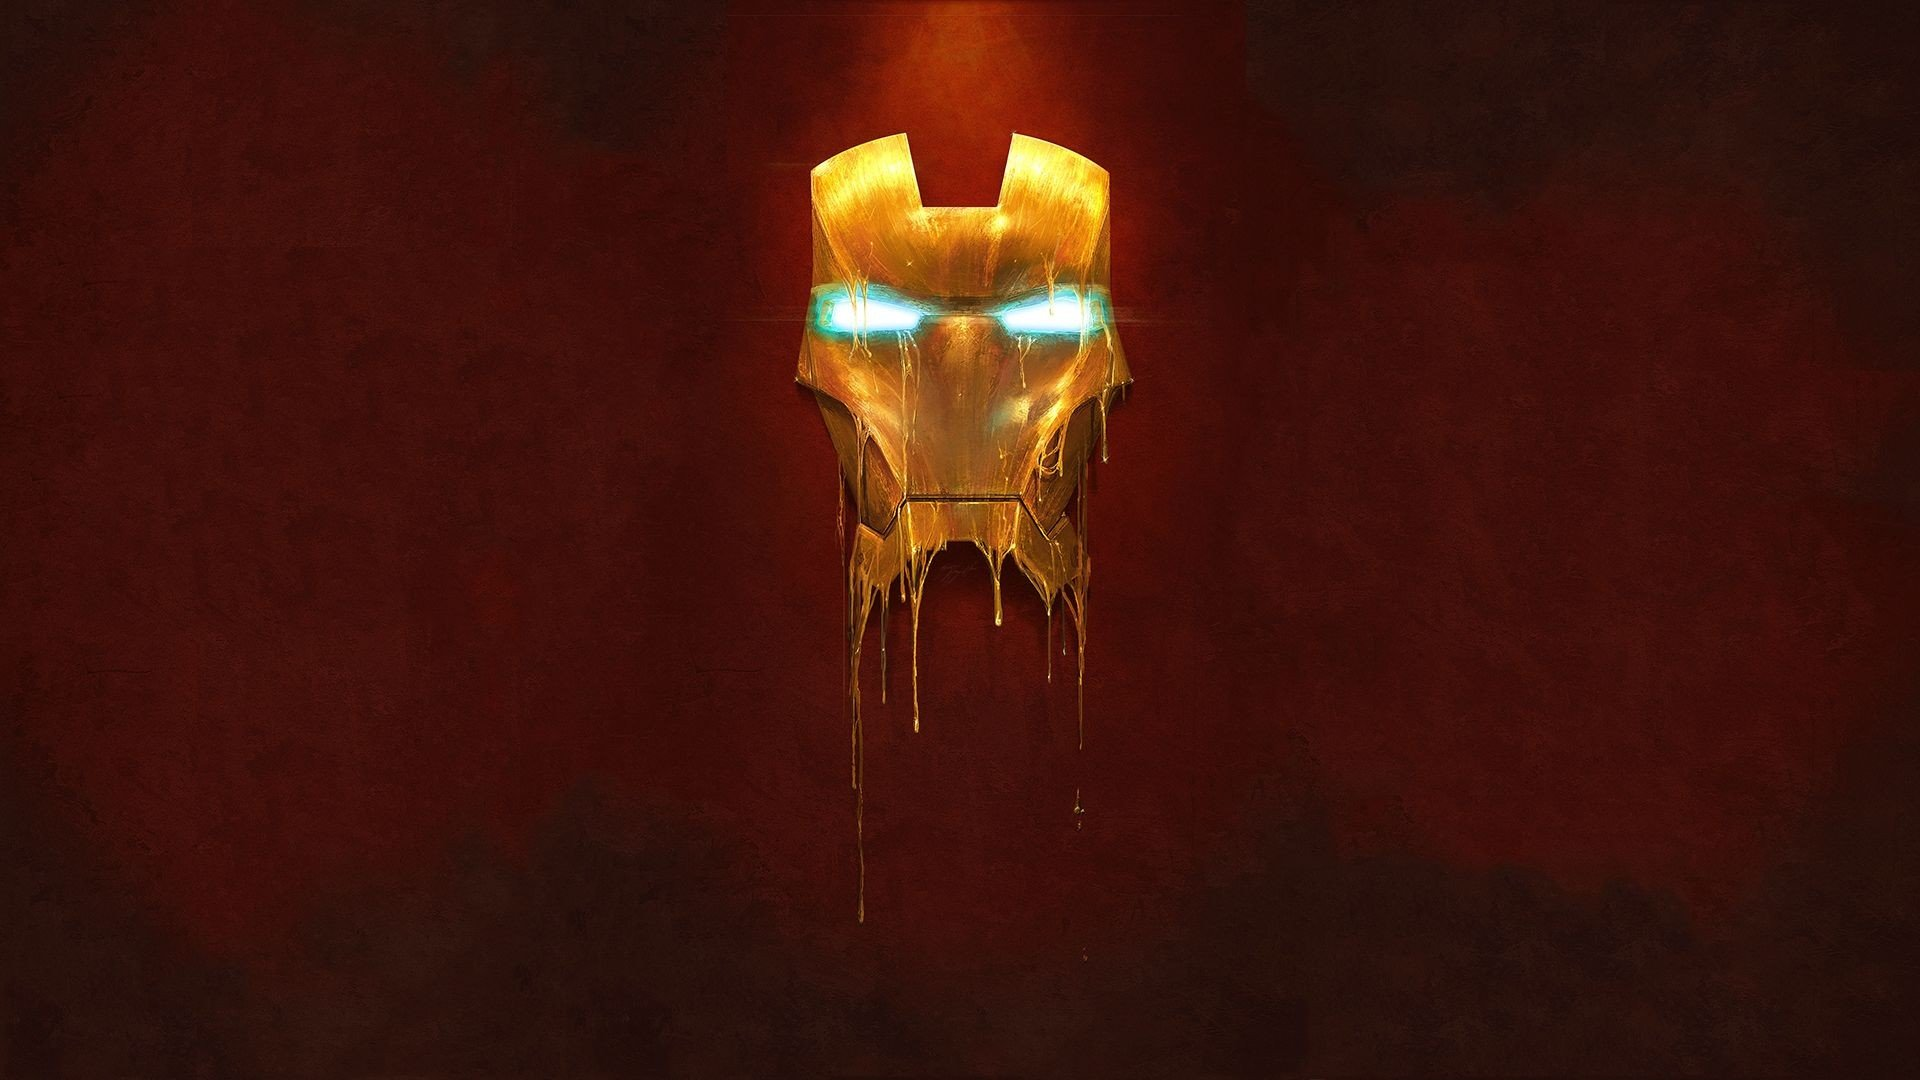 Download hd 1920x1080 Iron Man computer background ID:68 for free